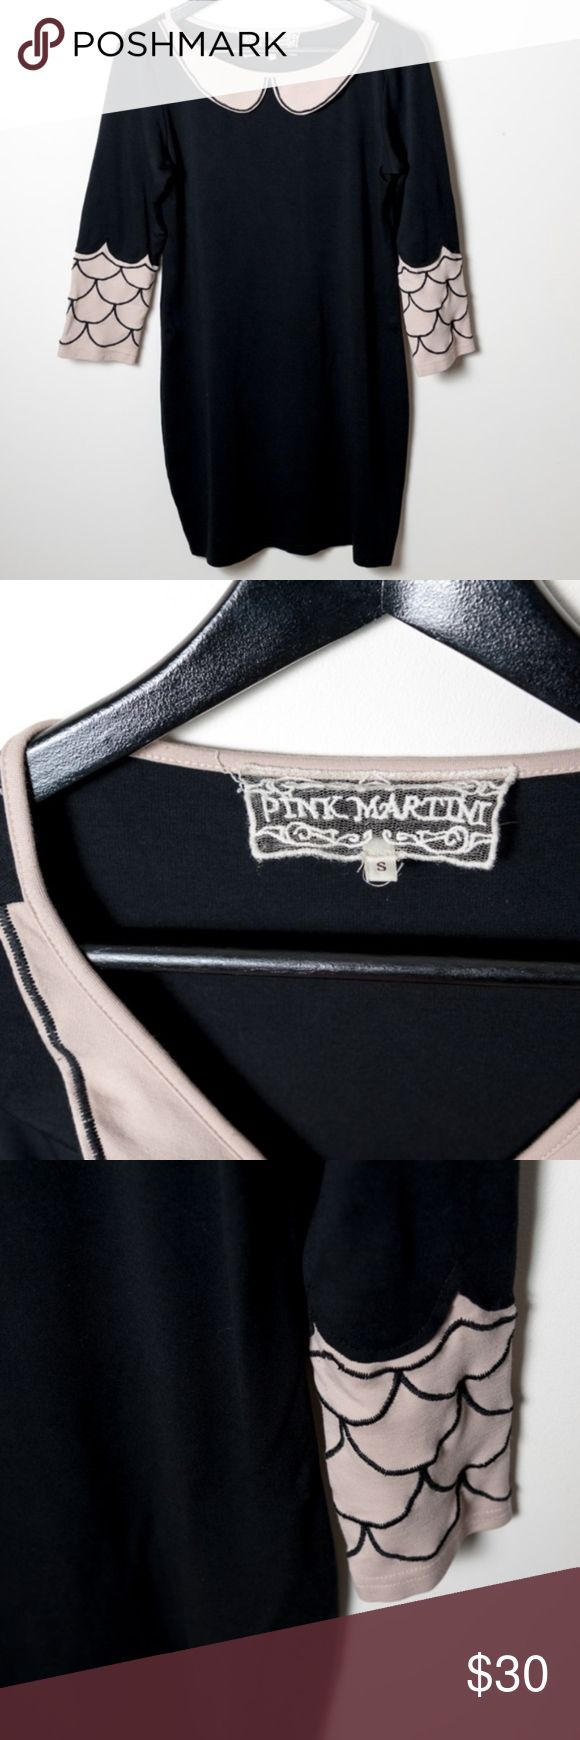 Pink Martini Black Dress Pink Blush Trim Small Little Black Dress from Pink Martini. Graphic black and blush peter pan collar and scalloped sleeves. Good preloved condition. No noticeable holes, stains or rips. Pink Martini Dresses Mini